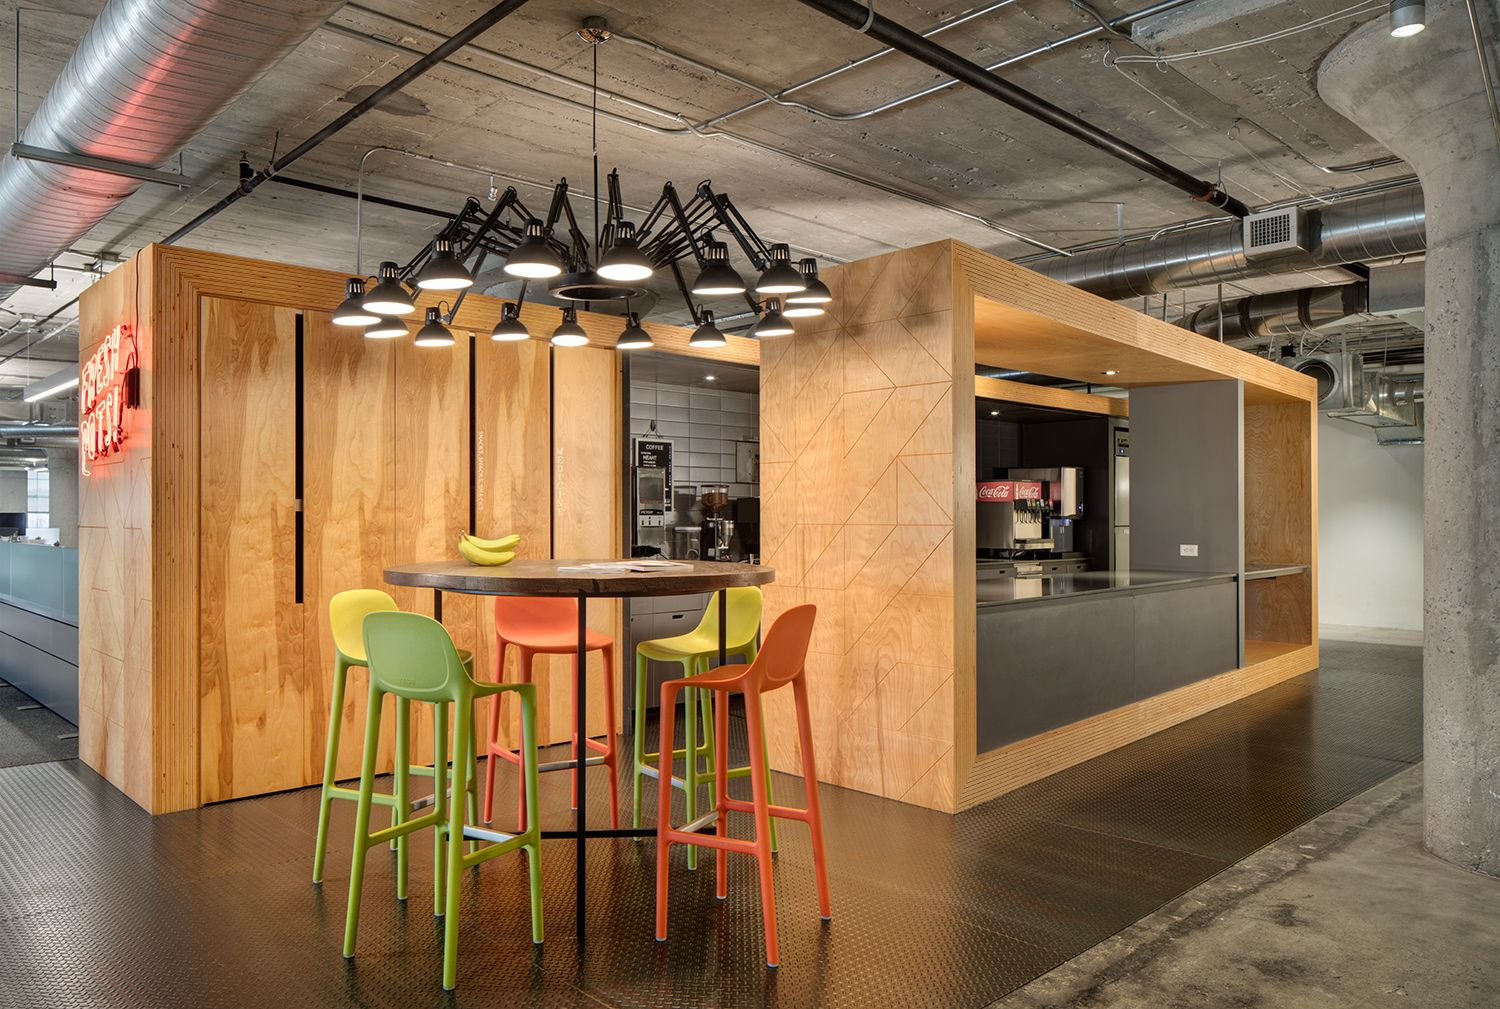 Broom stools, designed by Philippe Starck and made of reclaimed waste, at  the offices of Mailchimp in Atlanta. Architect: ASD I SKY